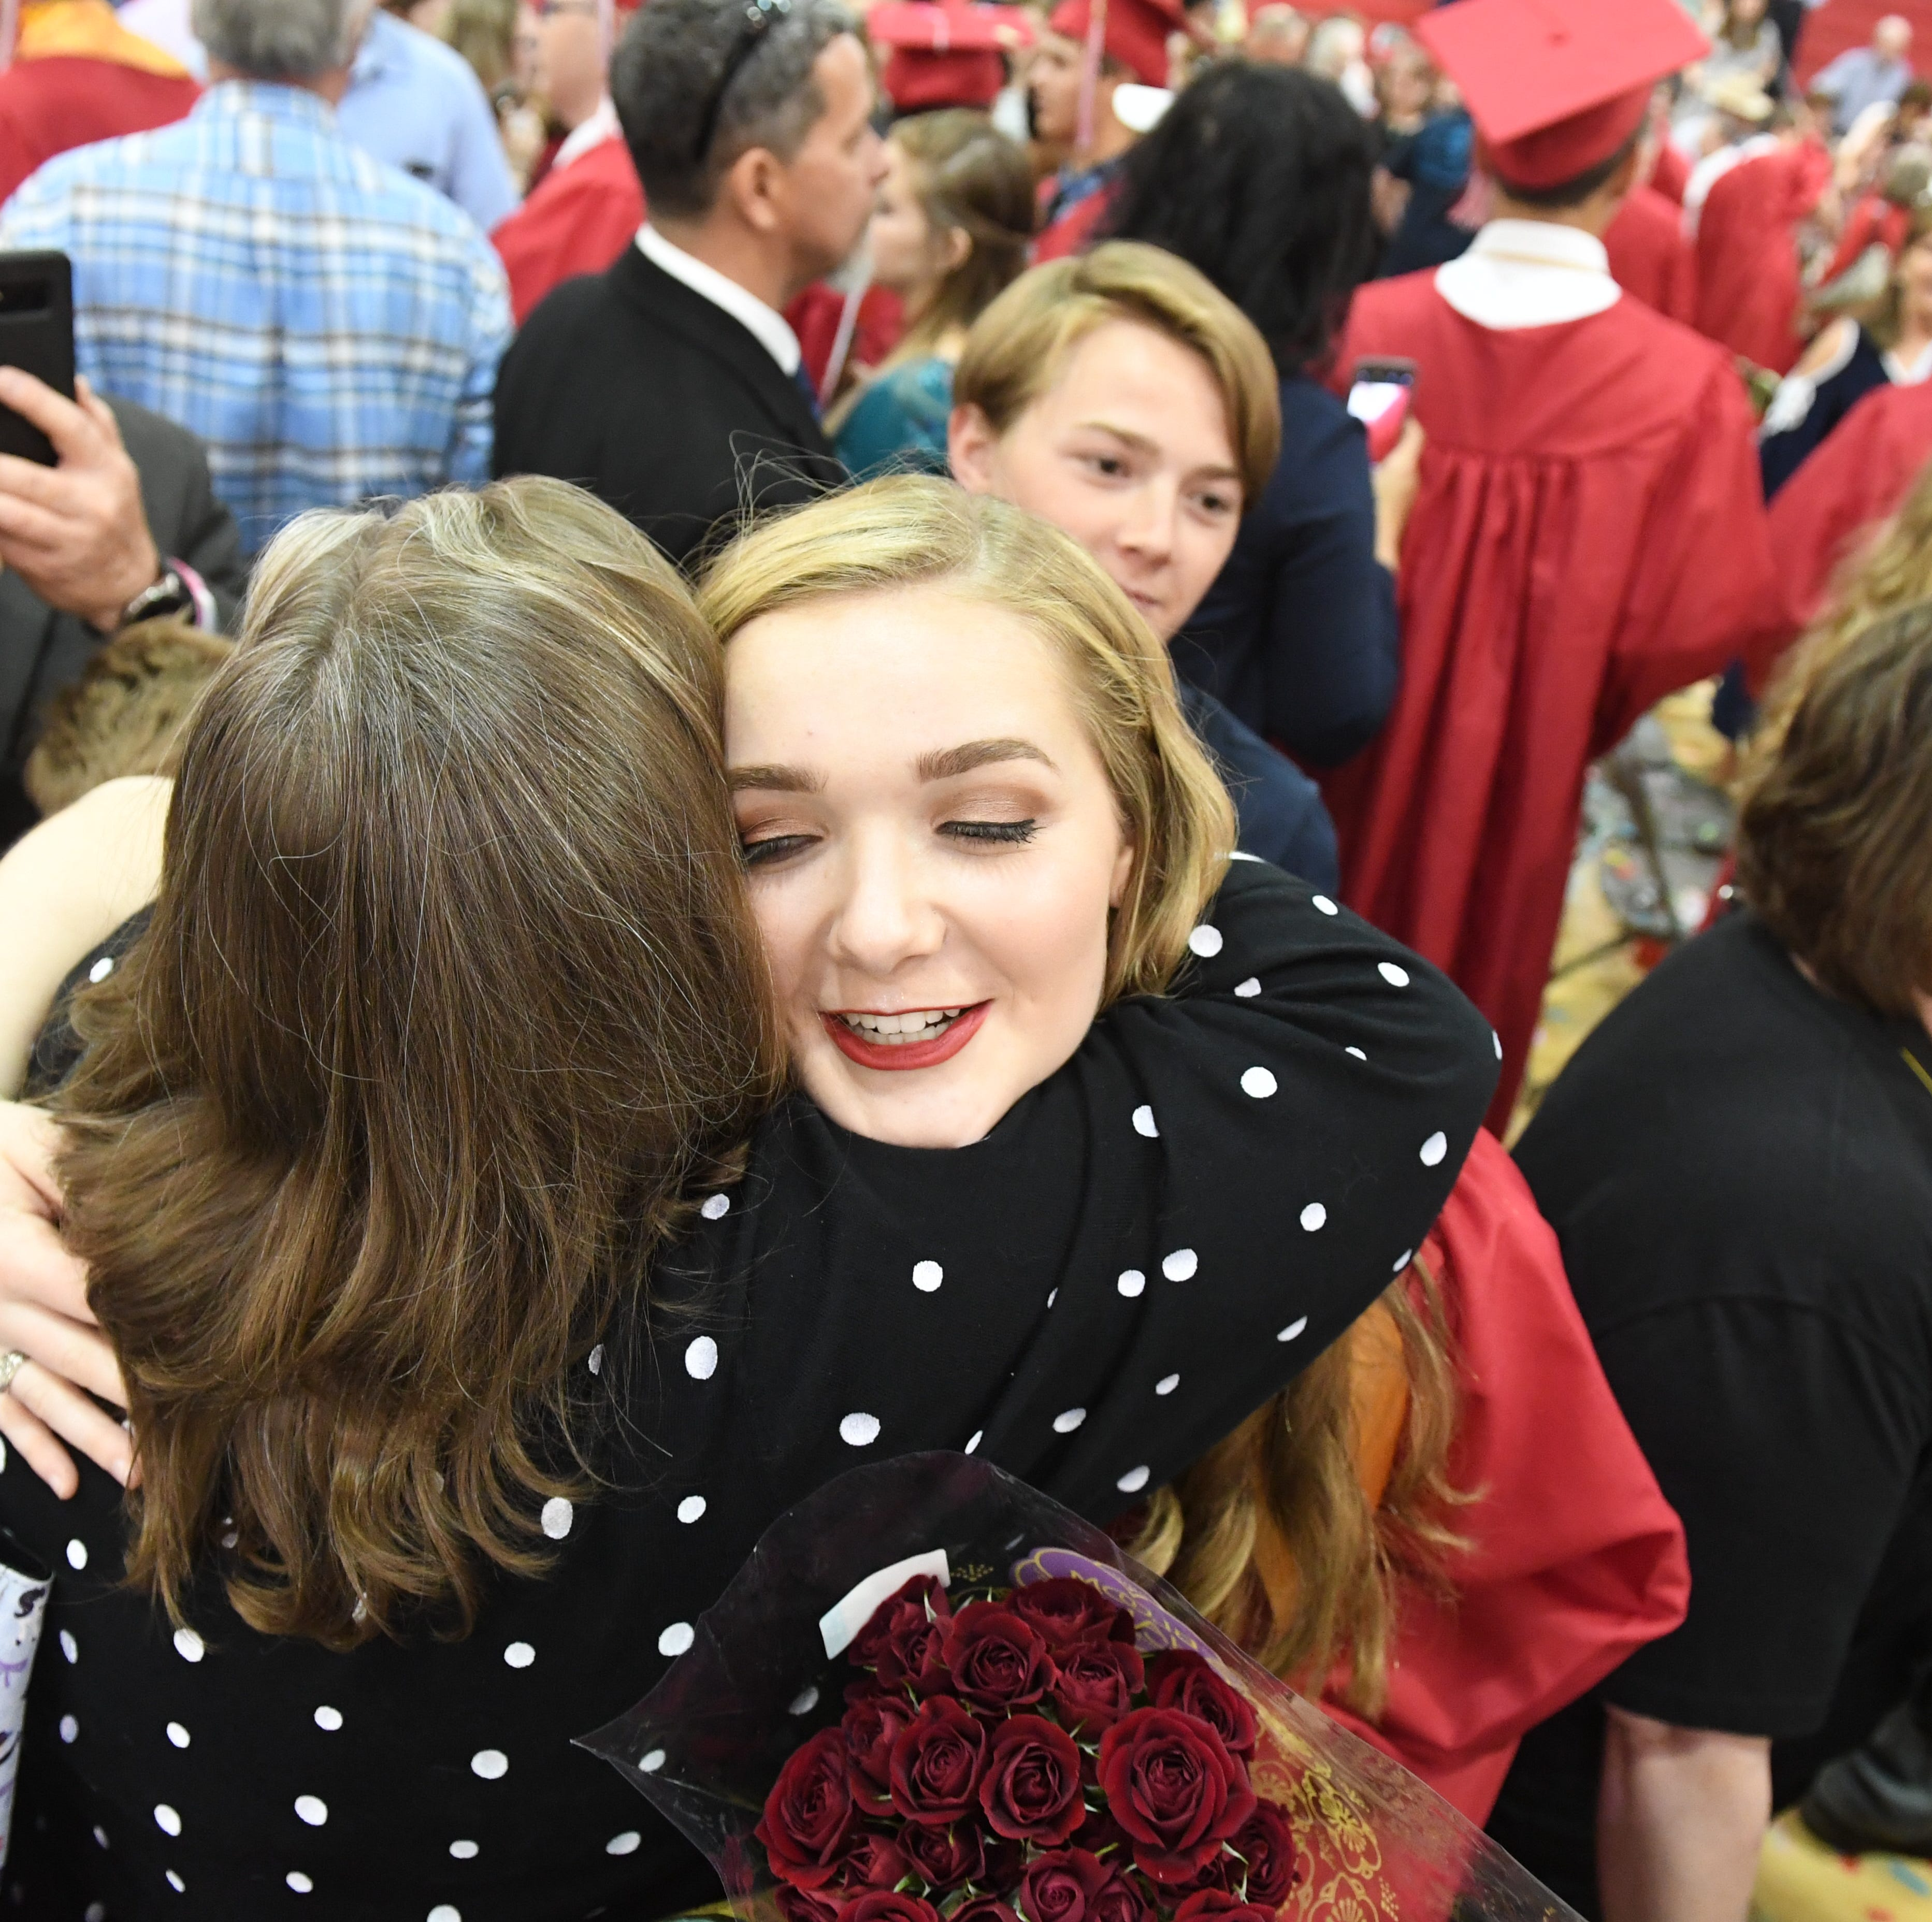 Photos: Riverheads commencement 2019